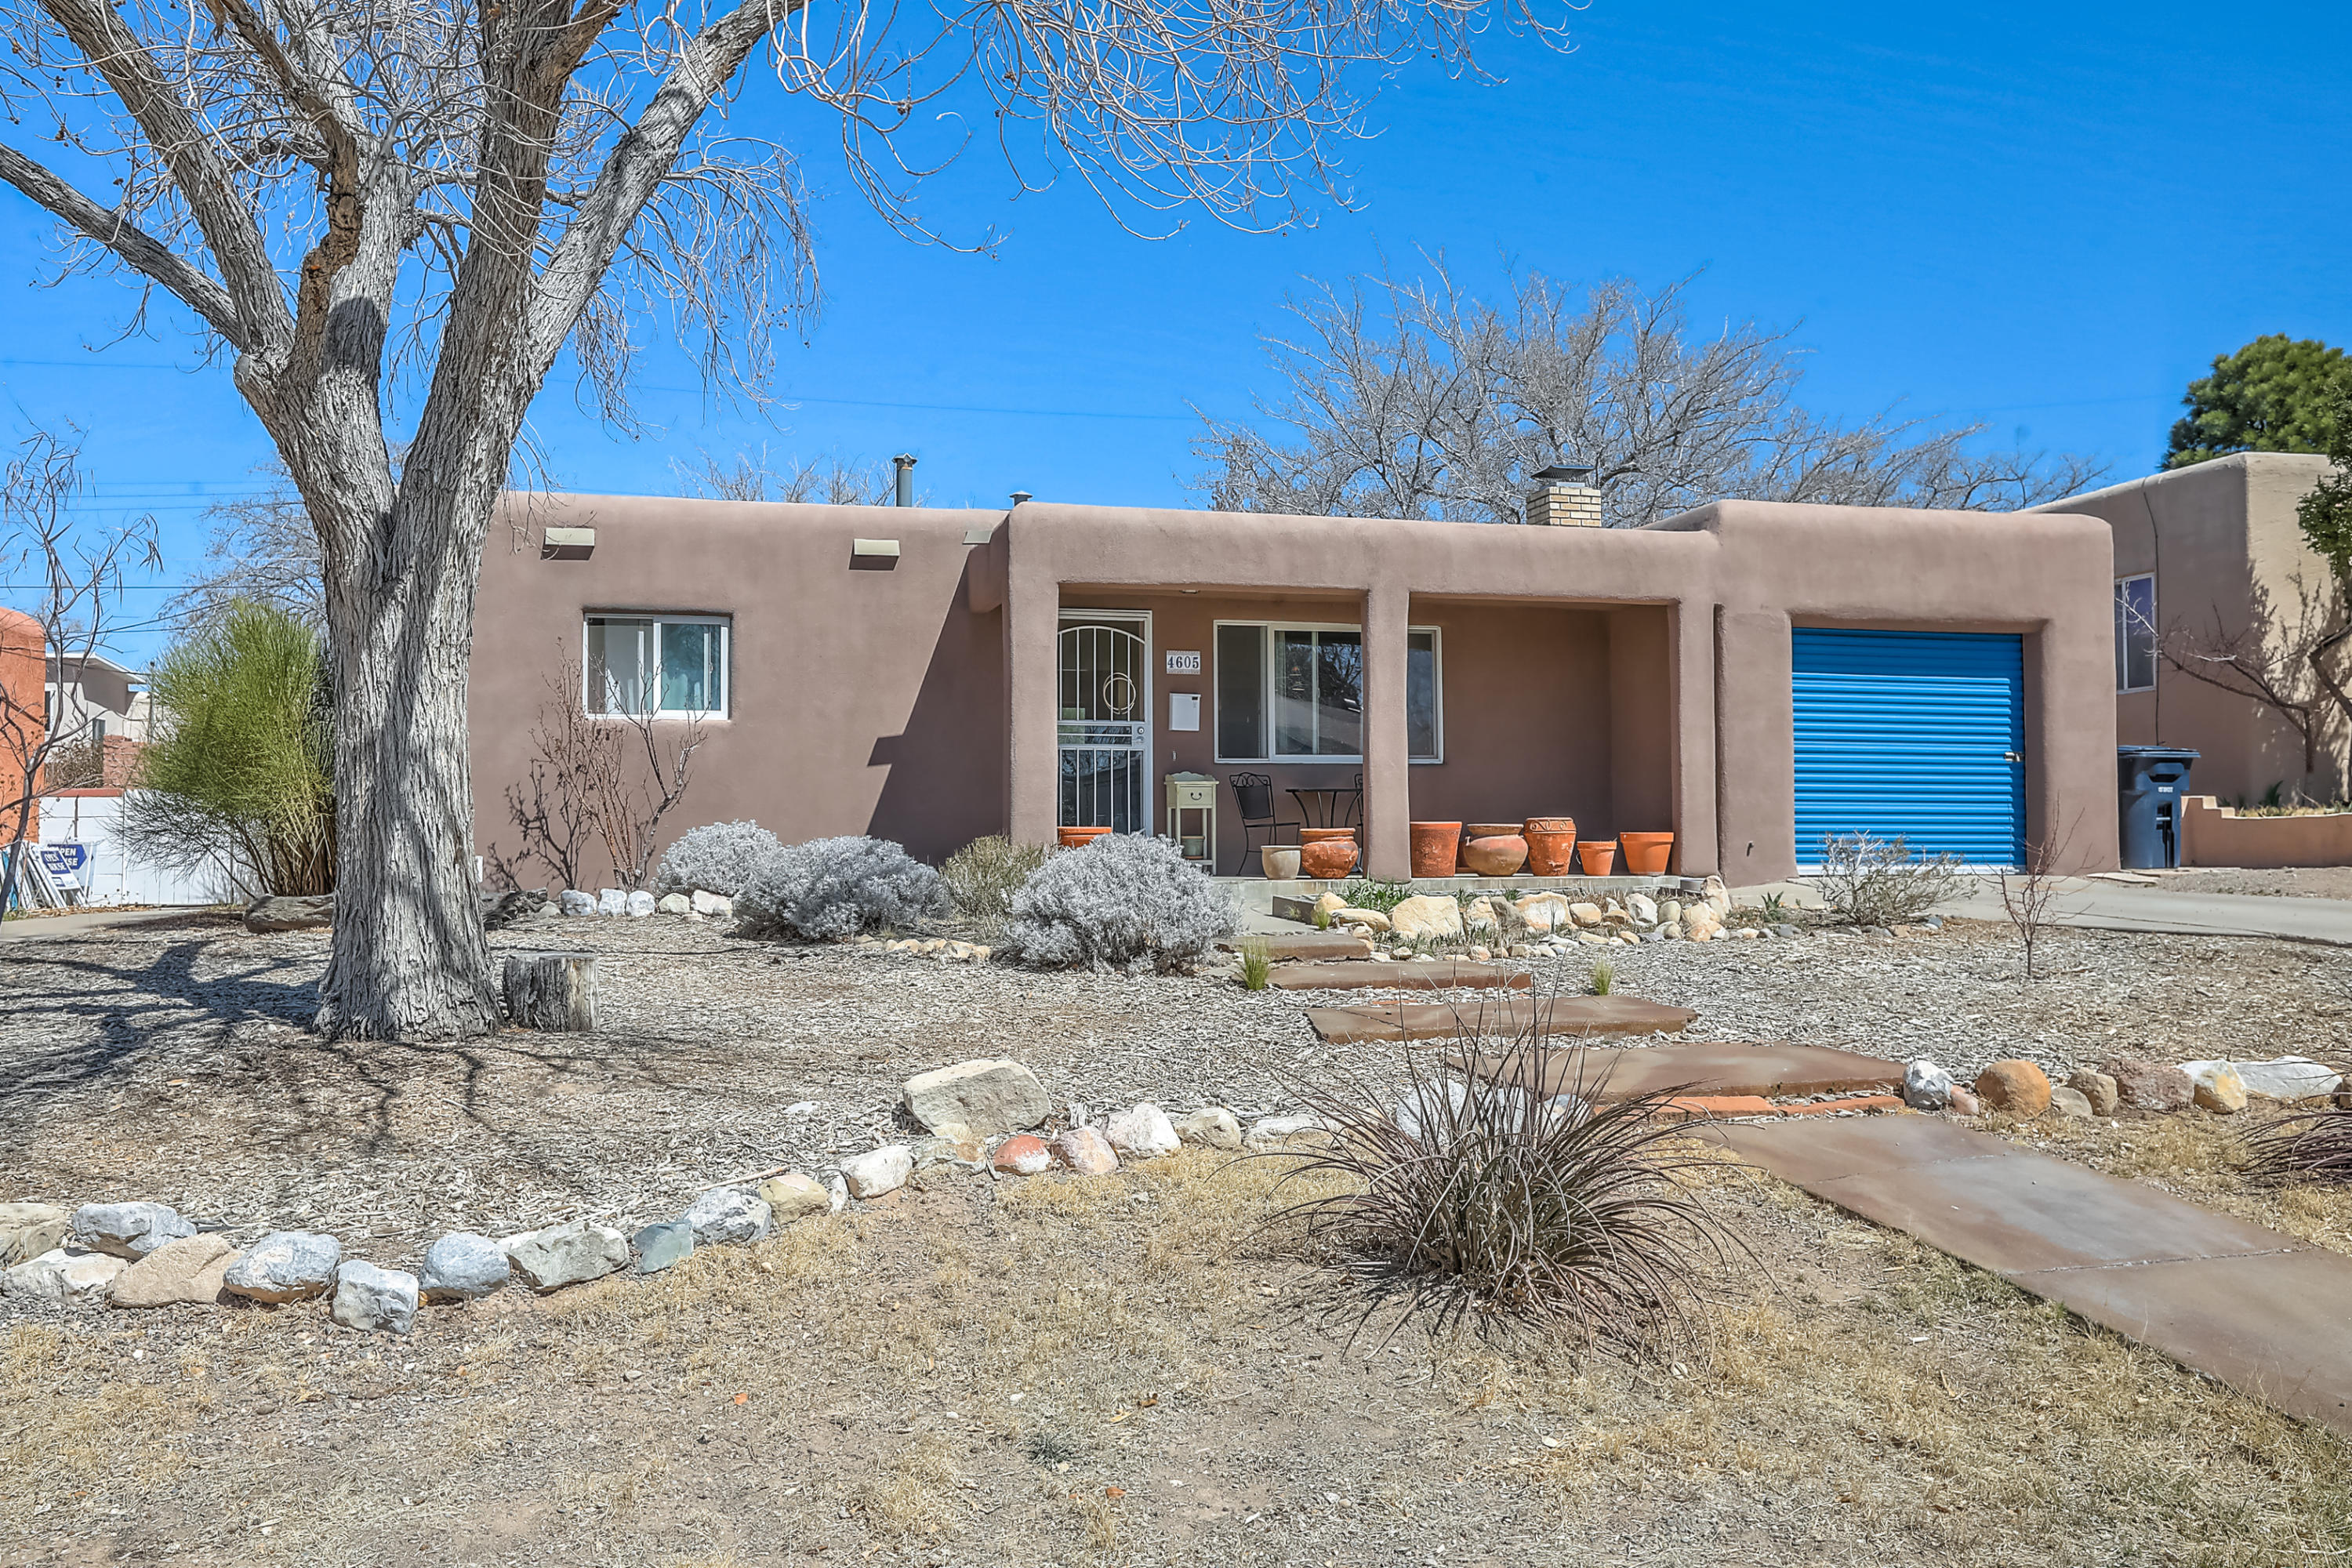 Come home to your sun-filled pueblo bungalow in desirable Ridge Park neighborhood! Classic old-Albuquerque style w/original hardwood floors in living & bedrooms, plastered walls, arched doorway, bull-nosed corners, built-ins & custom brick wood-burning fireplace. The beautifully remodeled kitchen showcases custom wood/glass cabinets, stainless appliances & ceramic backsplash, countertops & floor. Updated bath w/tile accents & pedestal sink, & classic hallway built-in linen shelves. Anderson Thermal windows throughout. The glass kitchen door opens to a spacious patio & private backyard complete with flagstone patio, dog run(could also be garden area) and awesome raised vegetable gardens. This superb location is close to UNM, Nob Hill, Midtown, I40/I25, Coronado/Uptown, bike trails & parks.